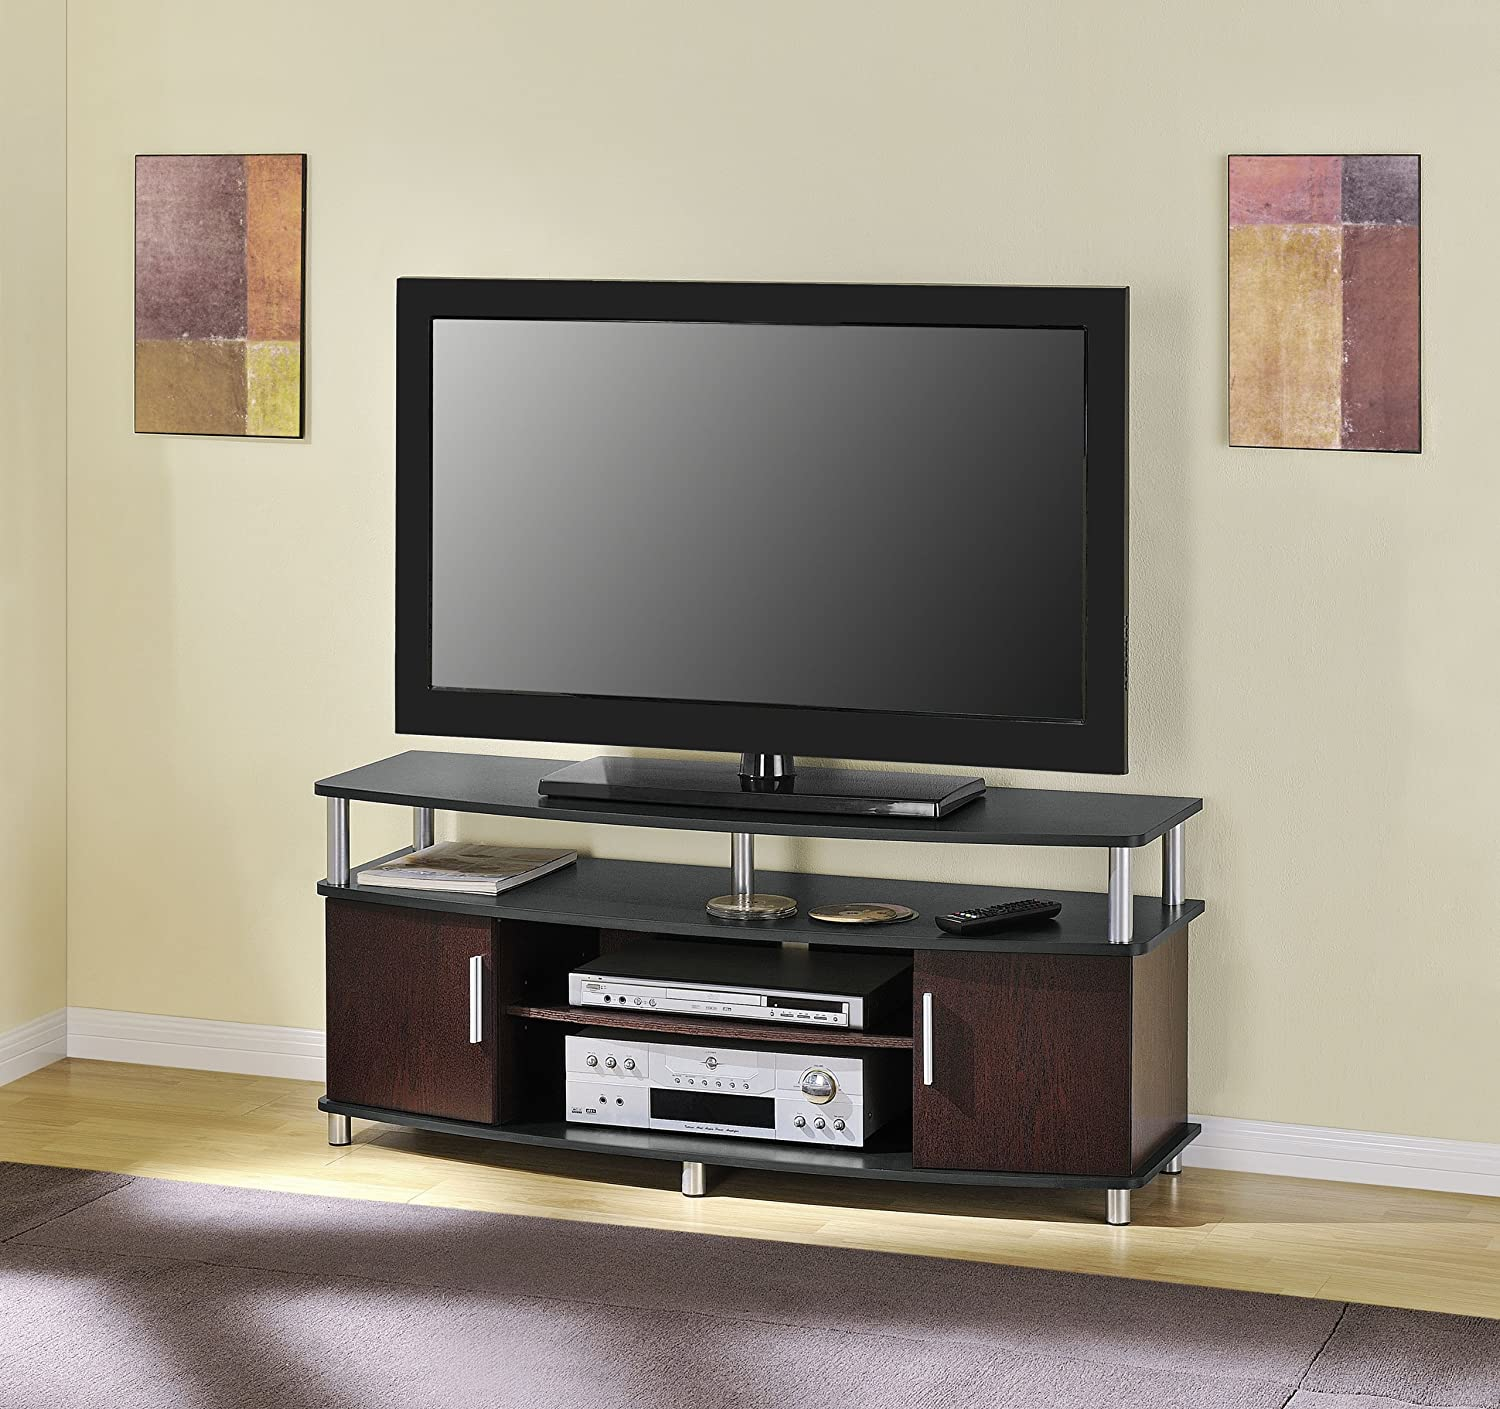 altra furniture carson 48 inch tv stand black and cherry new